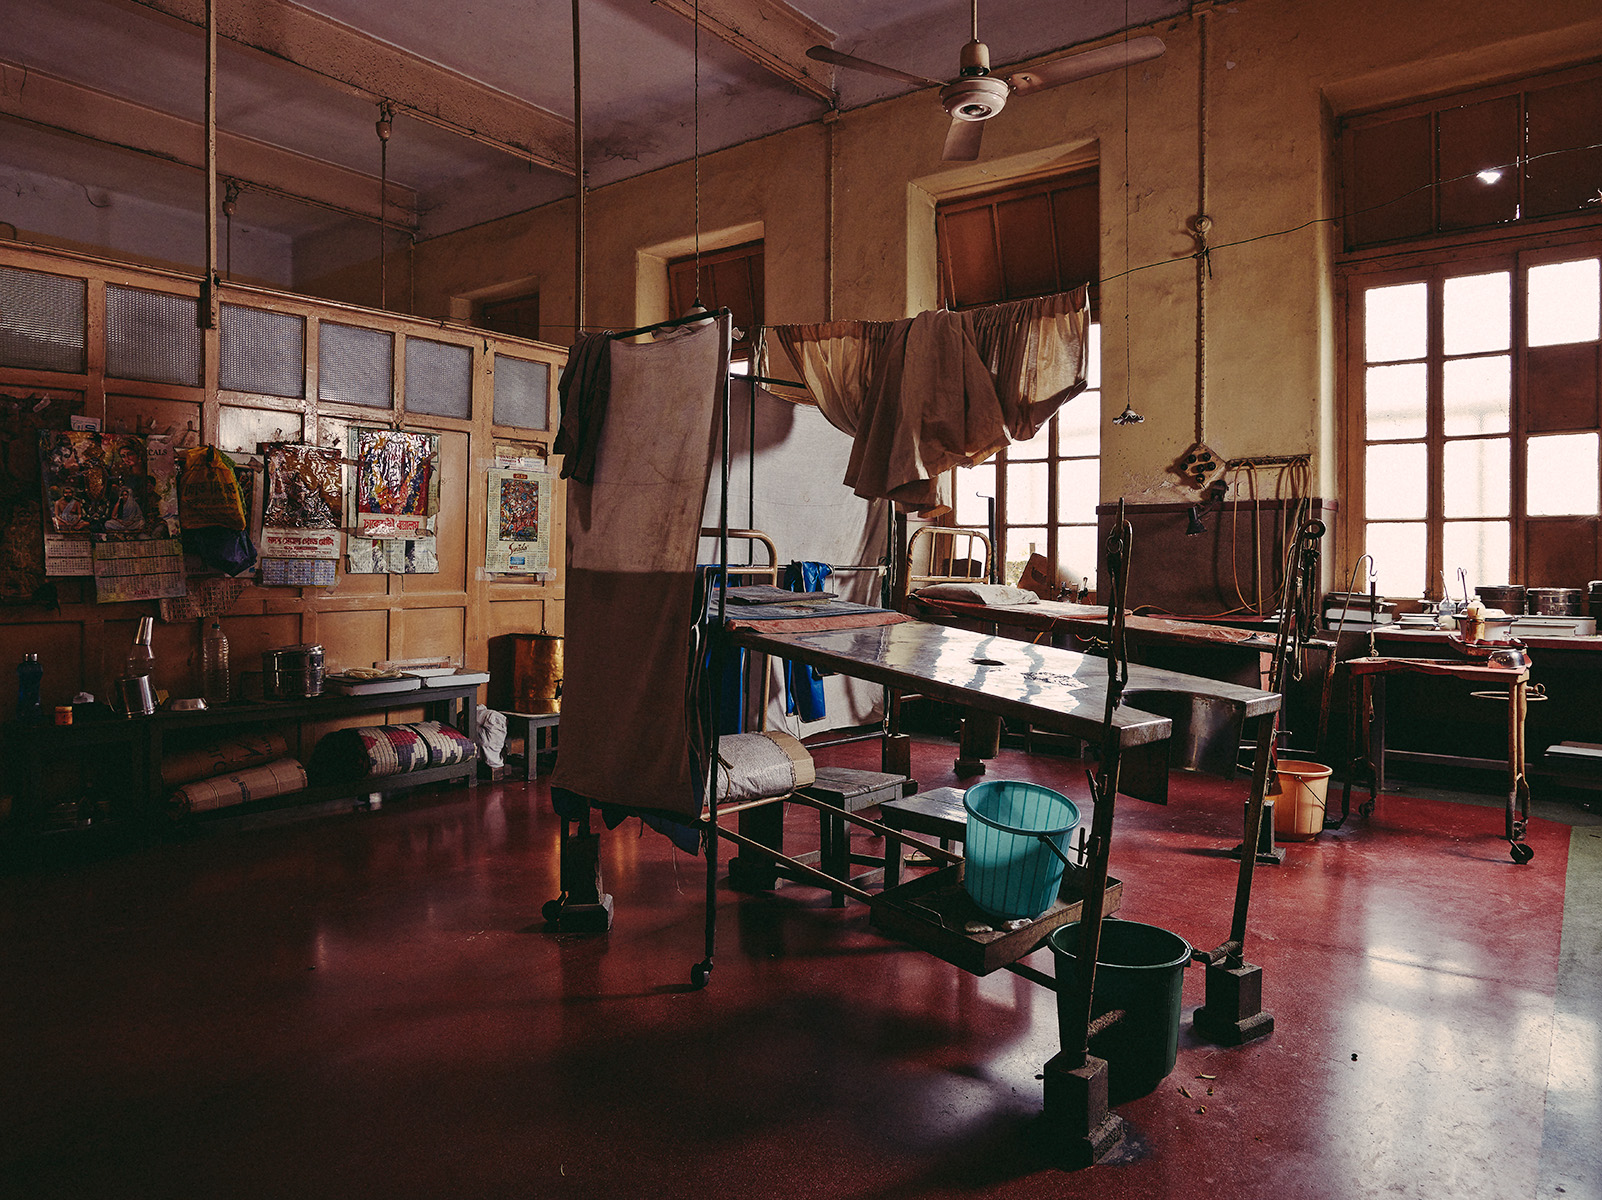 Labour Room No. 1